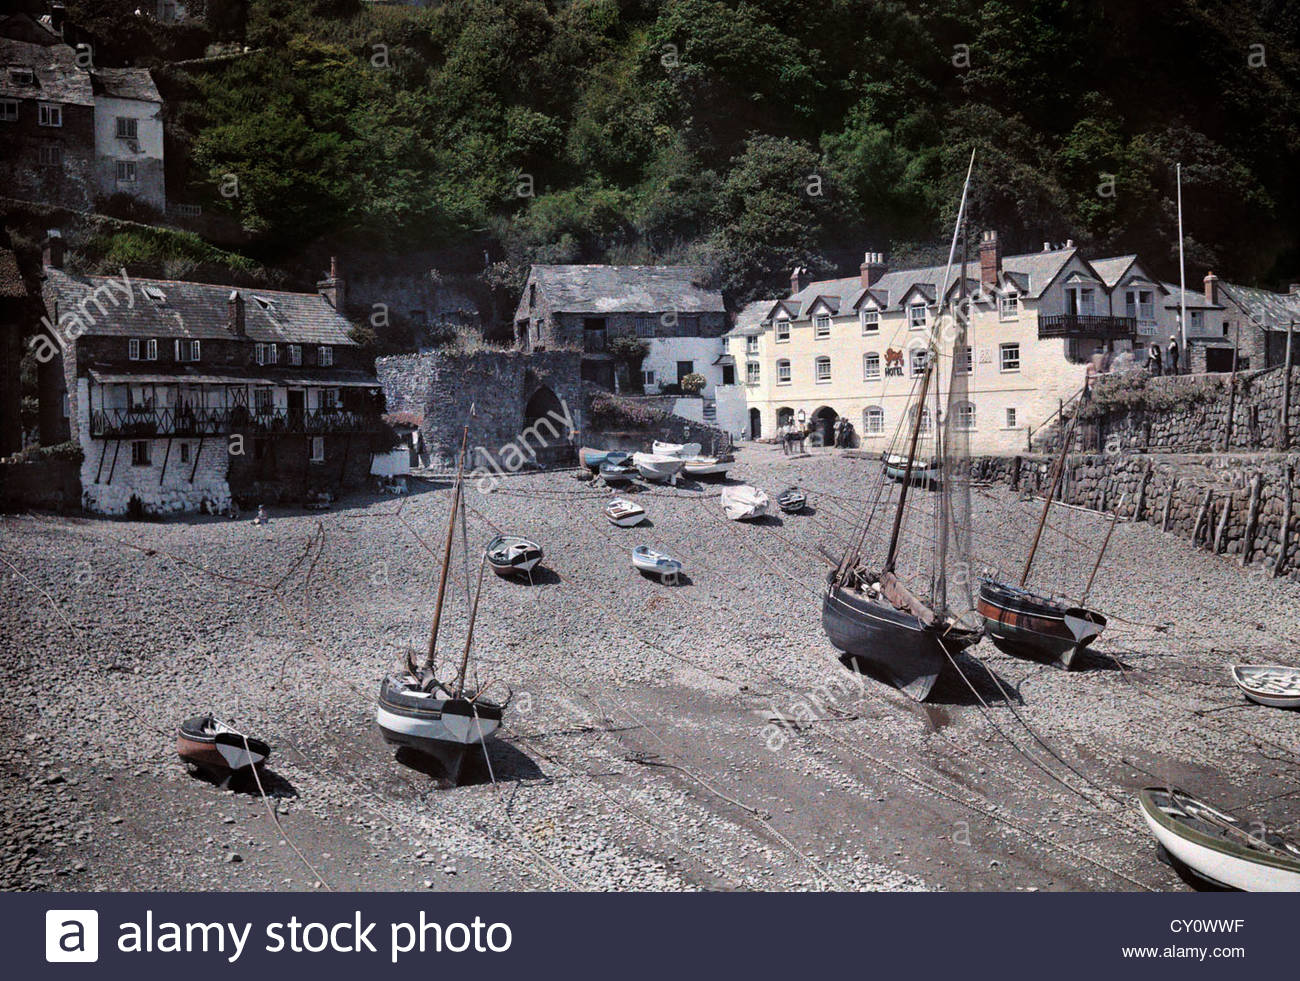 Boats rest on a rocky shore in front historic houses and inns. - Stock Image